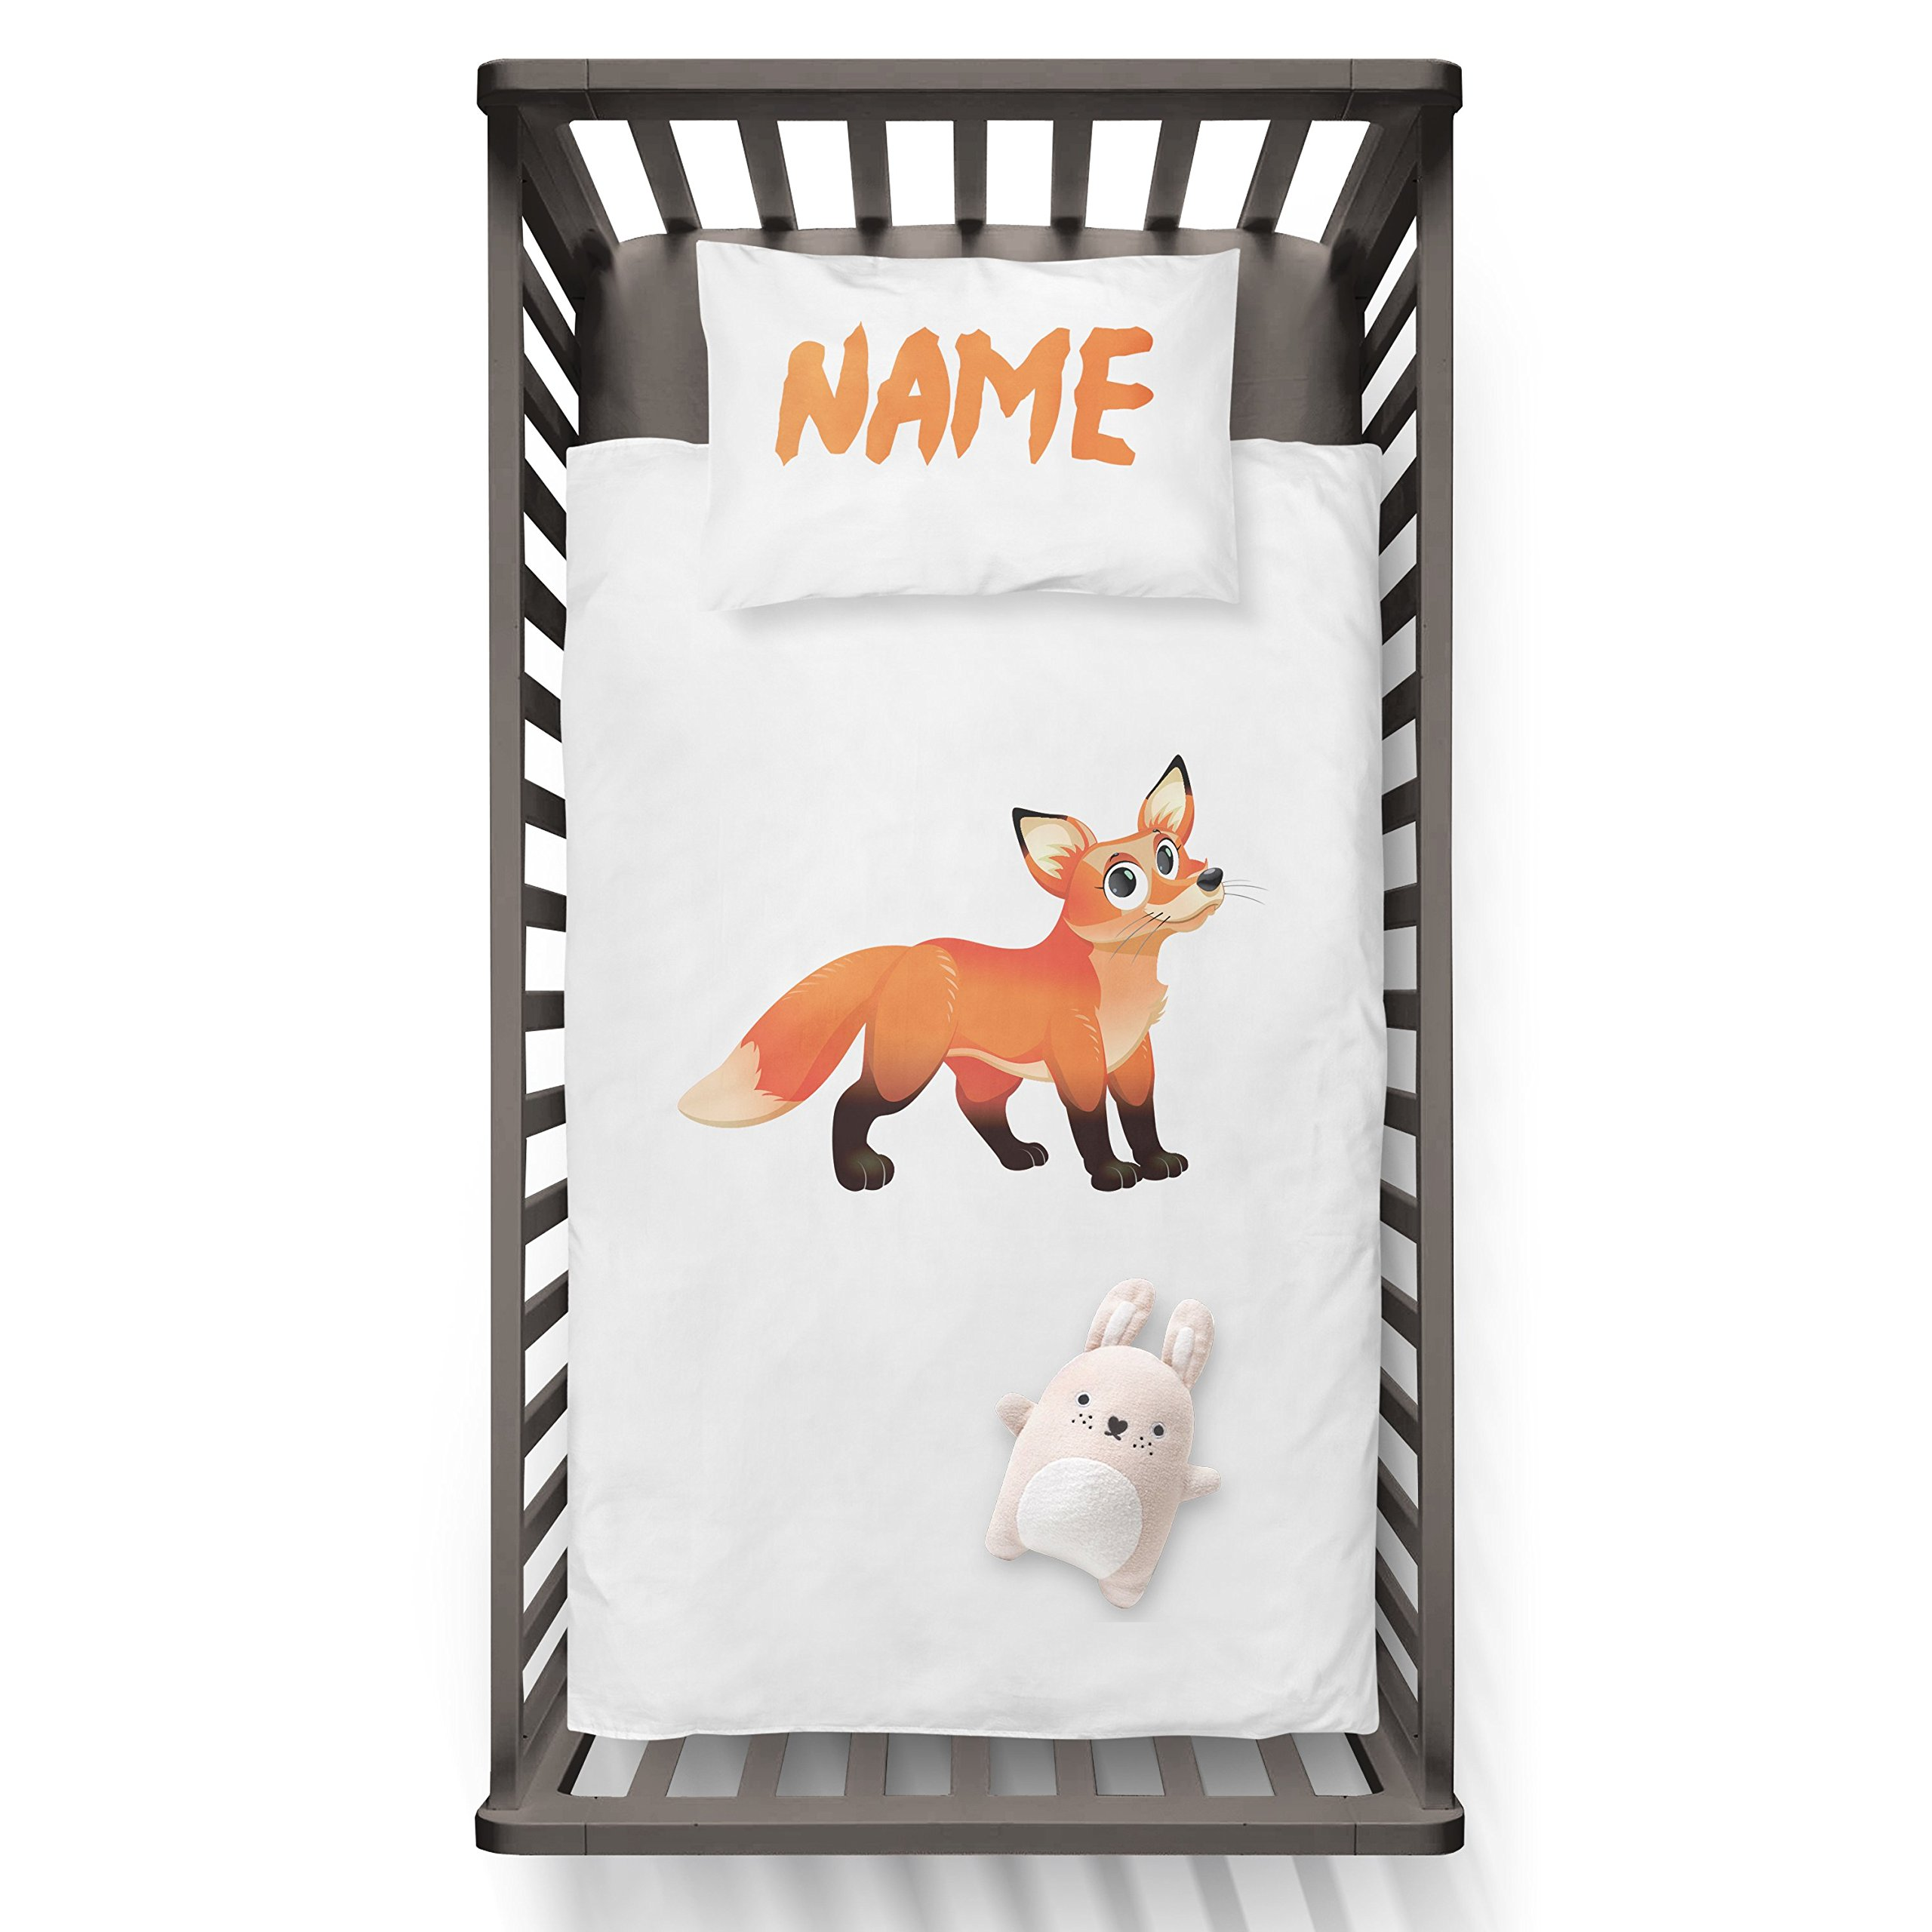 Zero Fox Given With Name On Pillow Funny Humor Hip Baby Duvet /Pillow set,Toddler Duvet,Oeko-Tex,Personalized duvet and pillow,Oraganic,gift